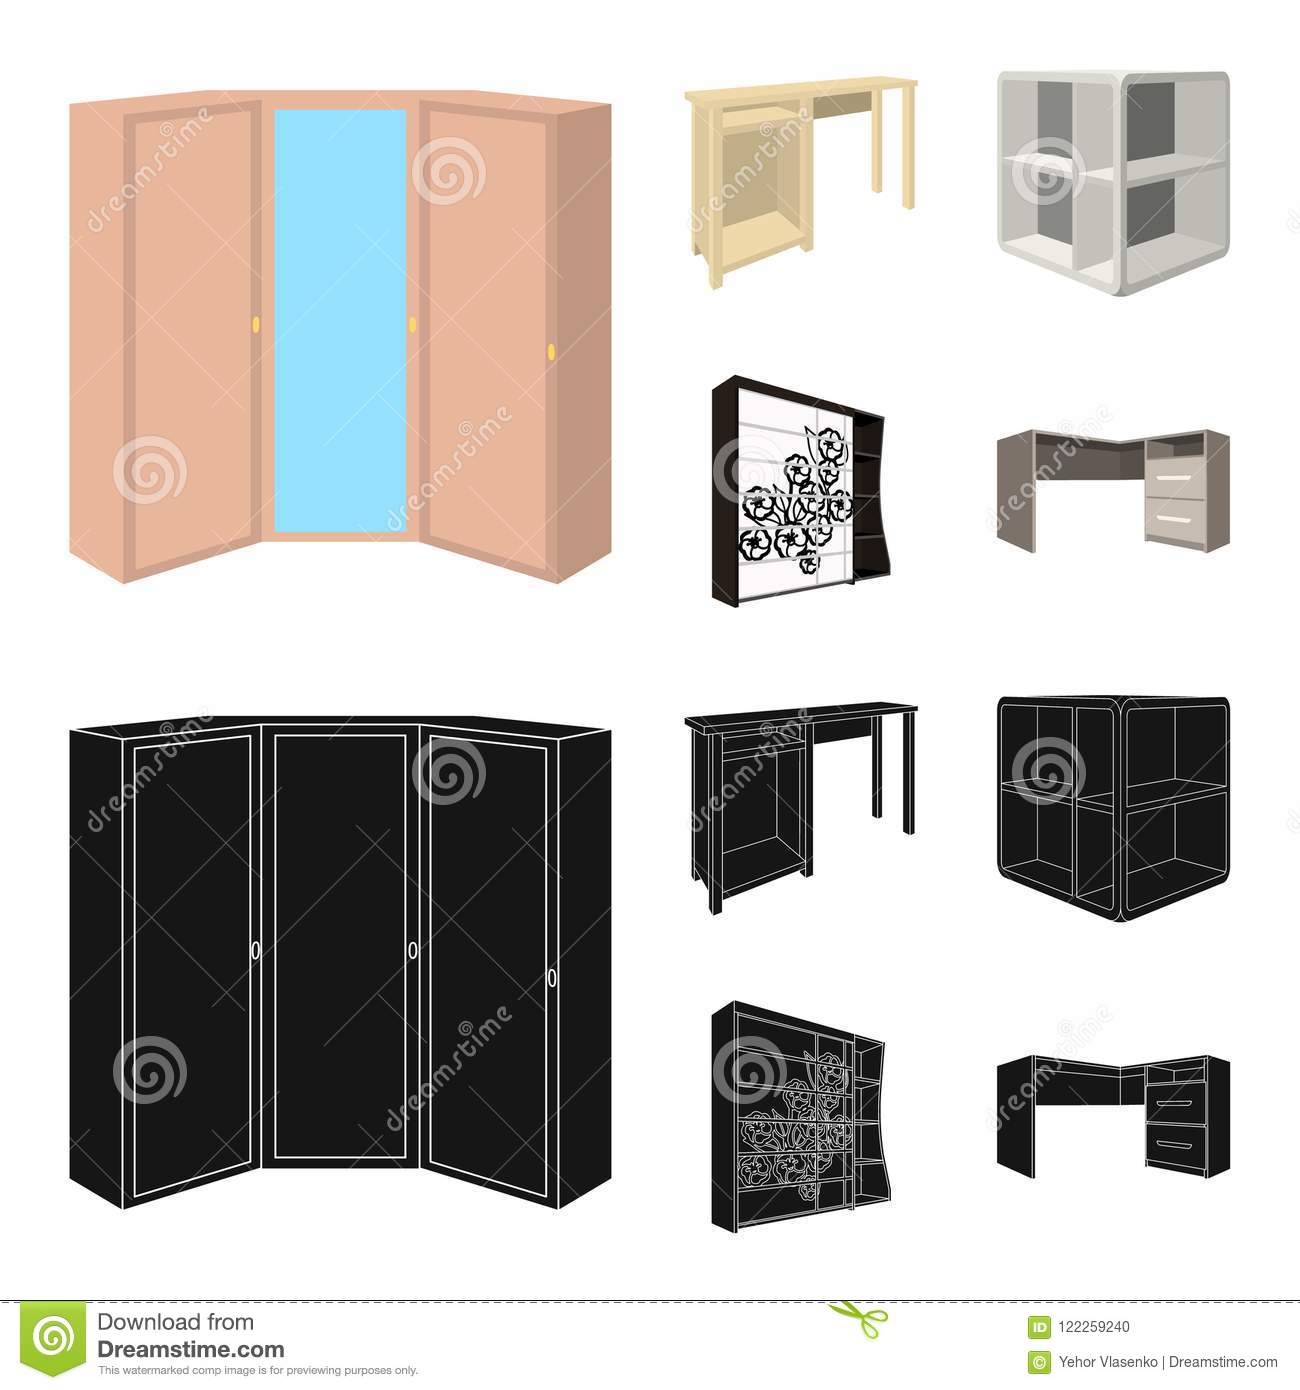 Dressing Table Corner Shelves Computer Desk Wardrobe With Glass Bedroom Furniture Set Collection Icons In Cartoon Stock Vector Illustration Of Vector Bedroom 122259240